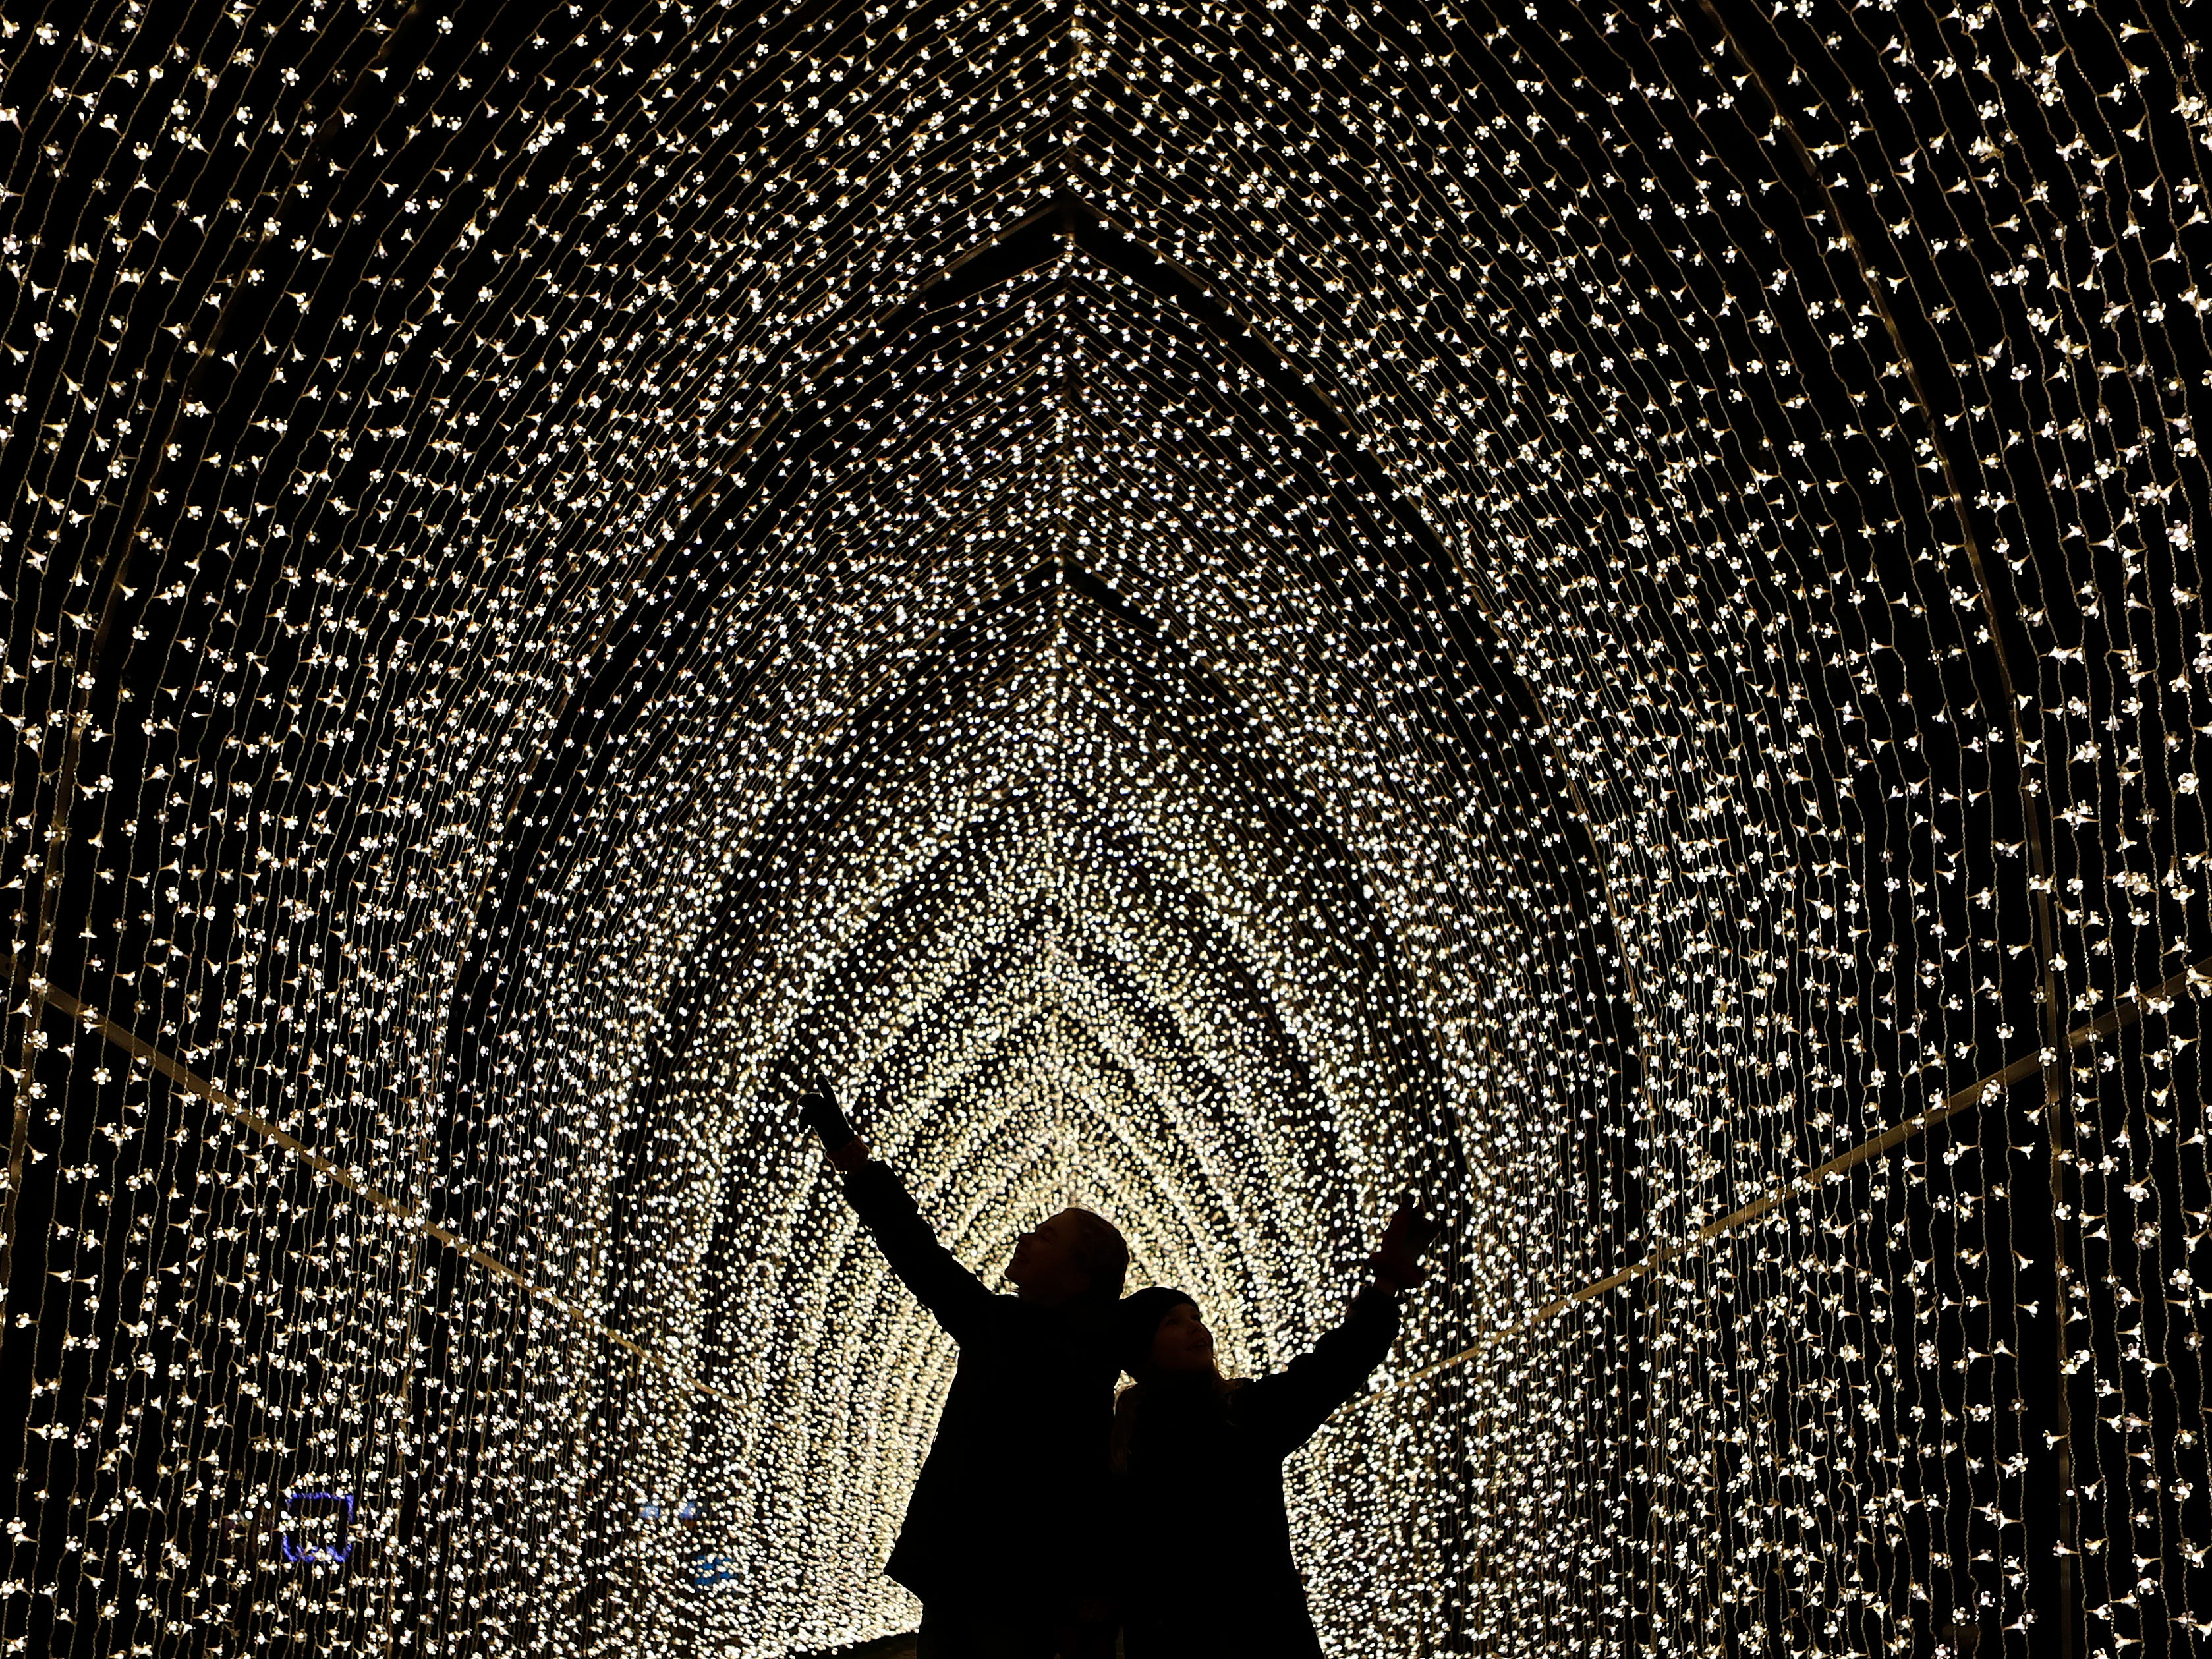 Children walk through the Cathedral of Light as part of the illuminated trail through Kew Gardens magnificent after-dark landscape, lit up by over one million twinkling lights in London, Wednesday, Nov. 21, 2018.